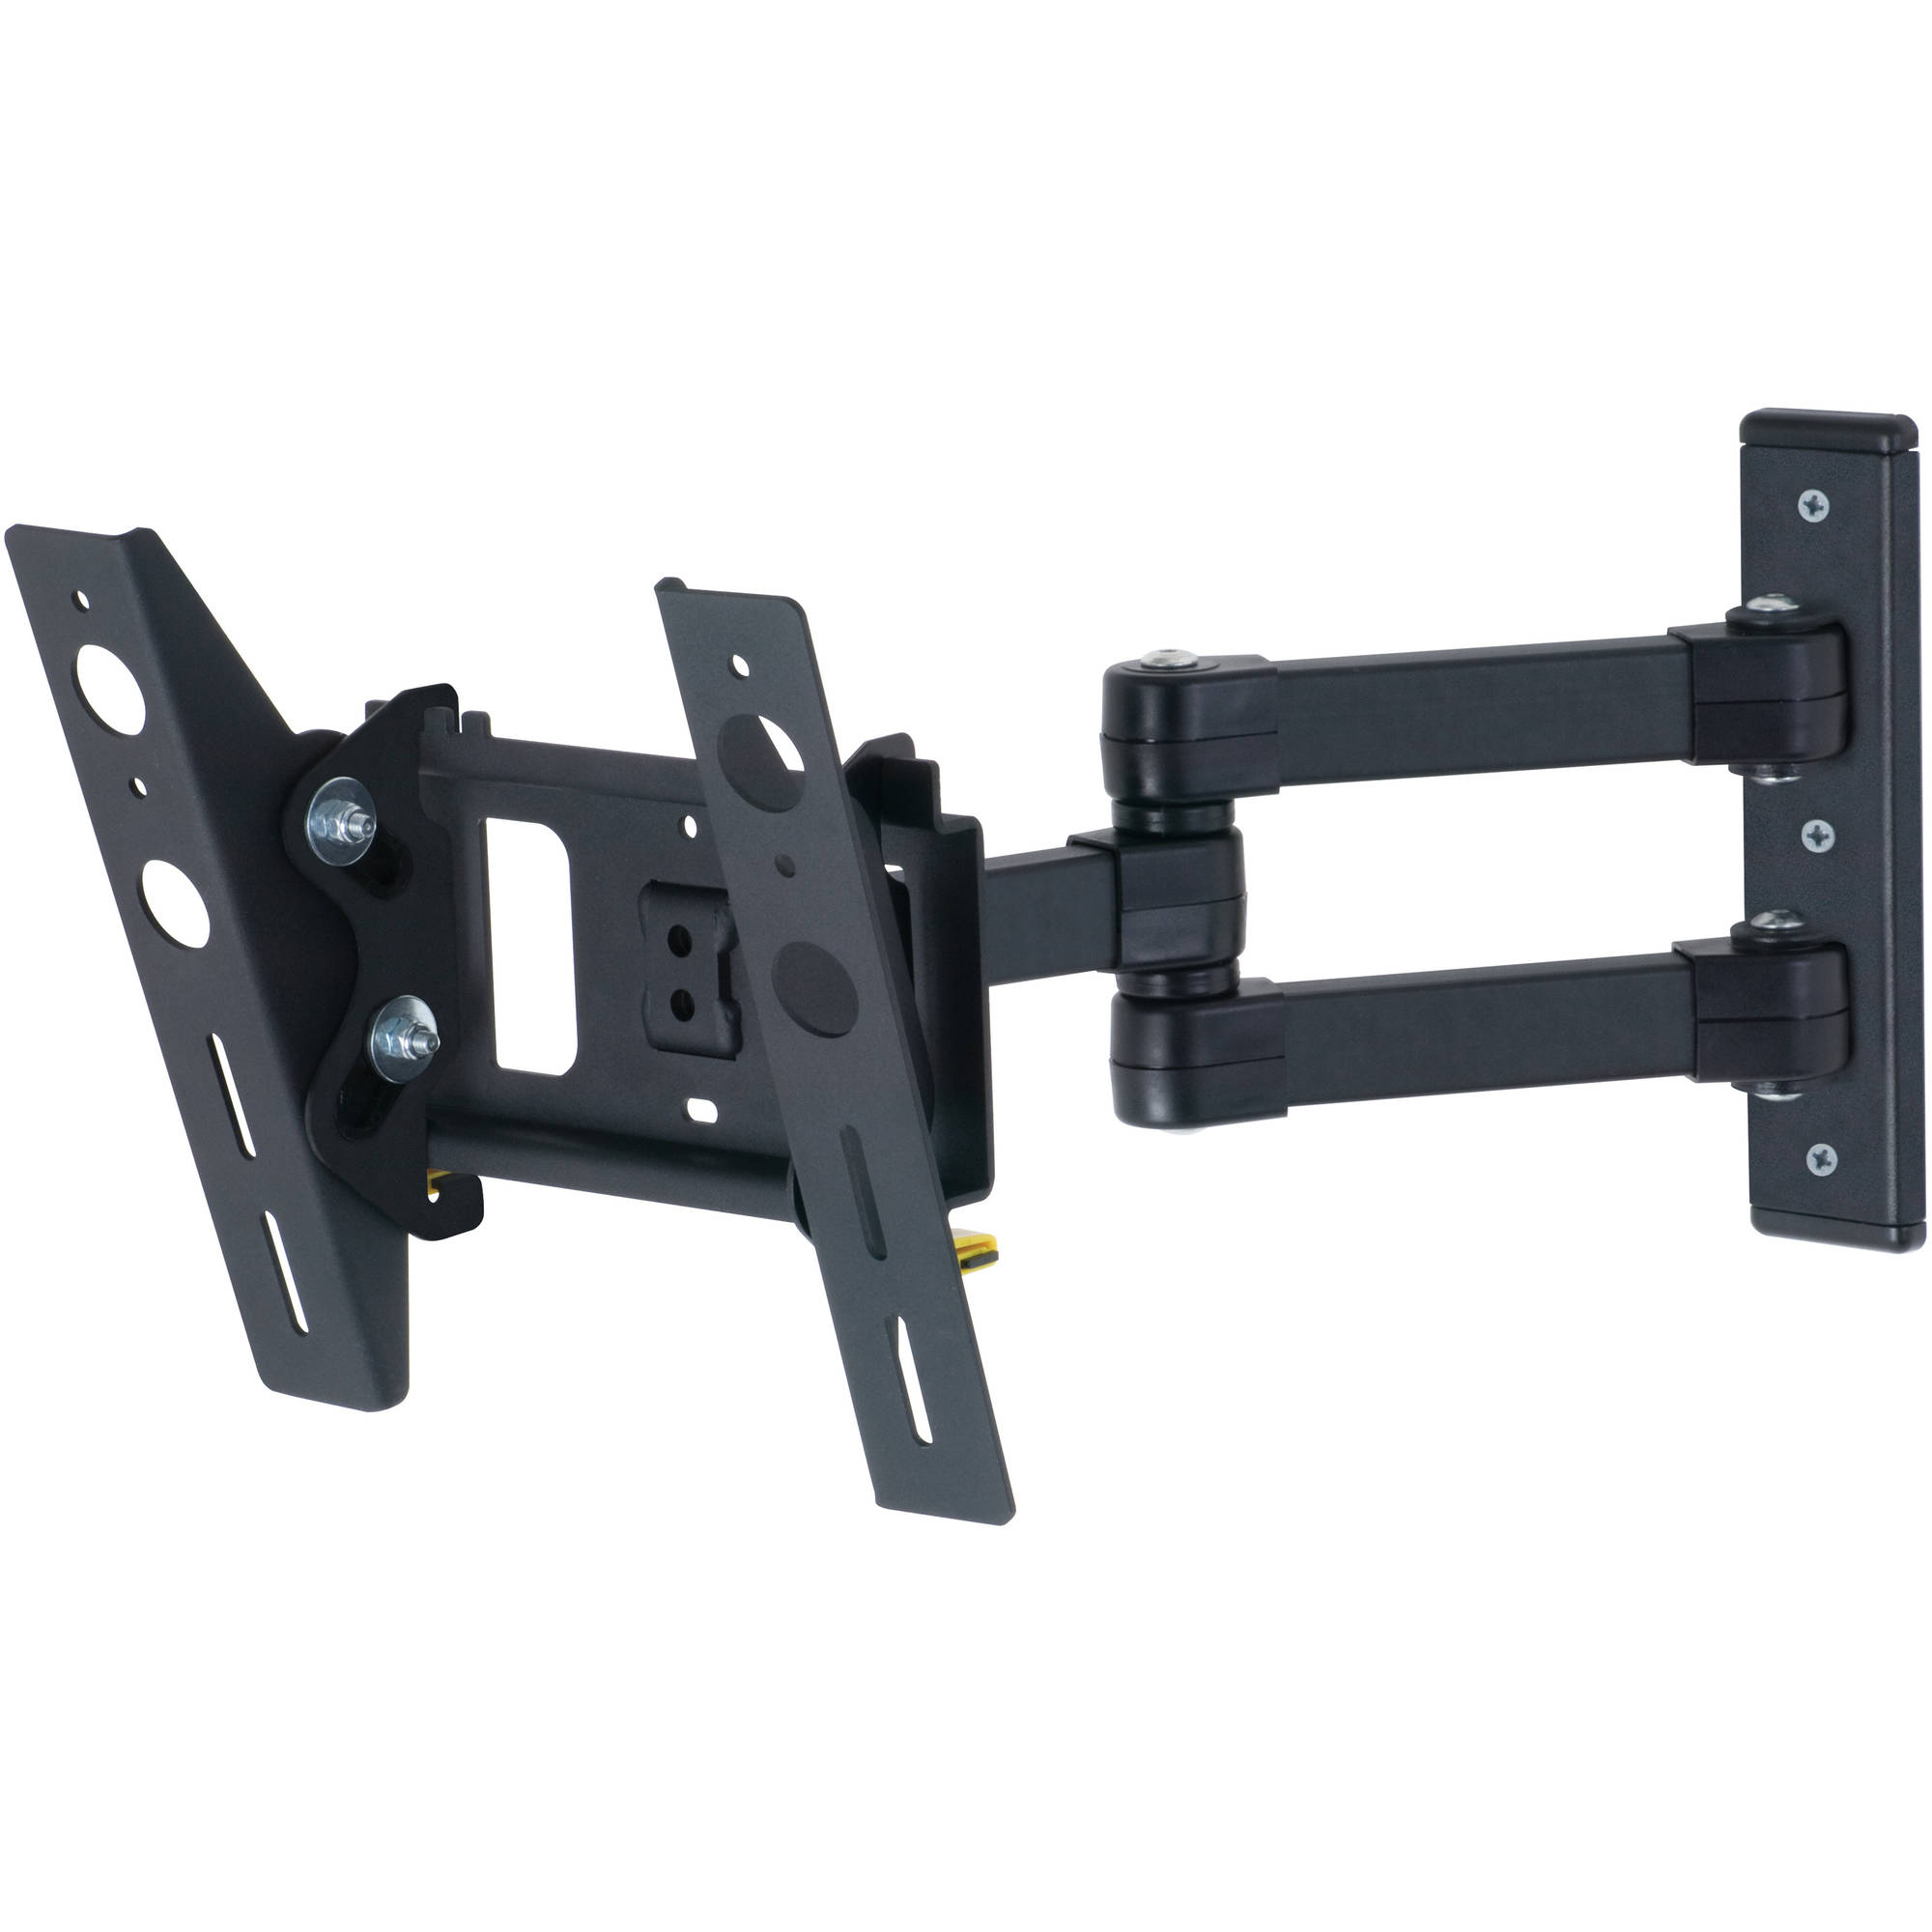 "AVF EL204B-A Multi Position TV Mount for 25""-32"" Flat Panel TVs"